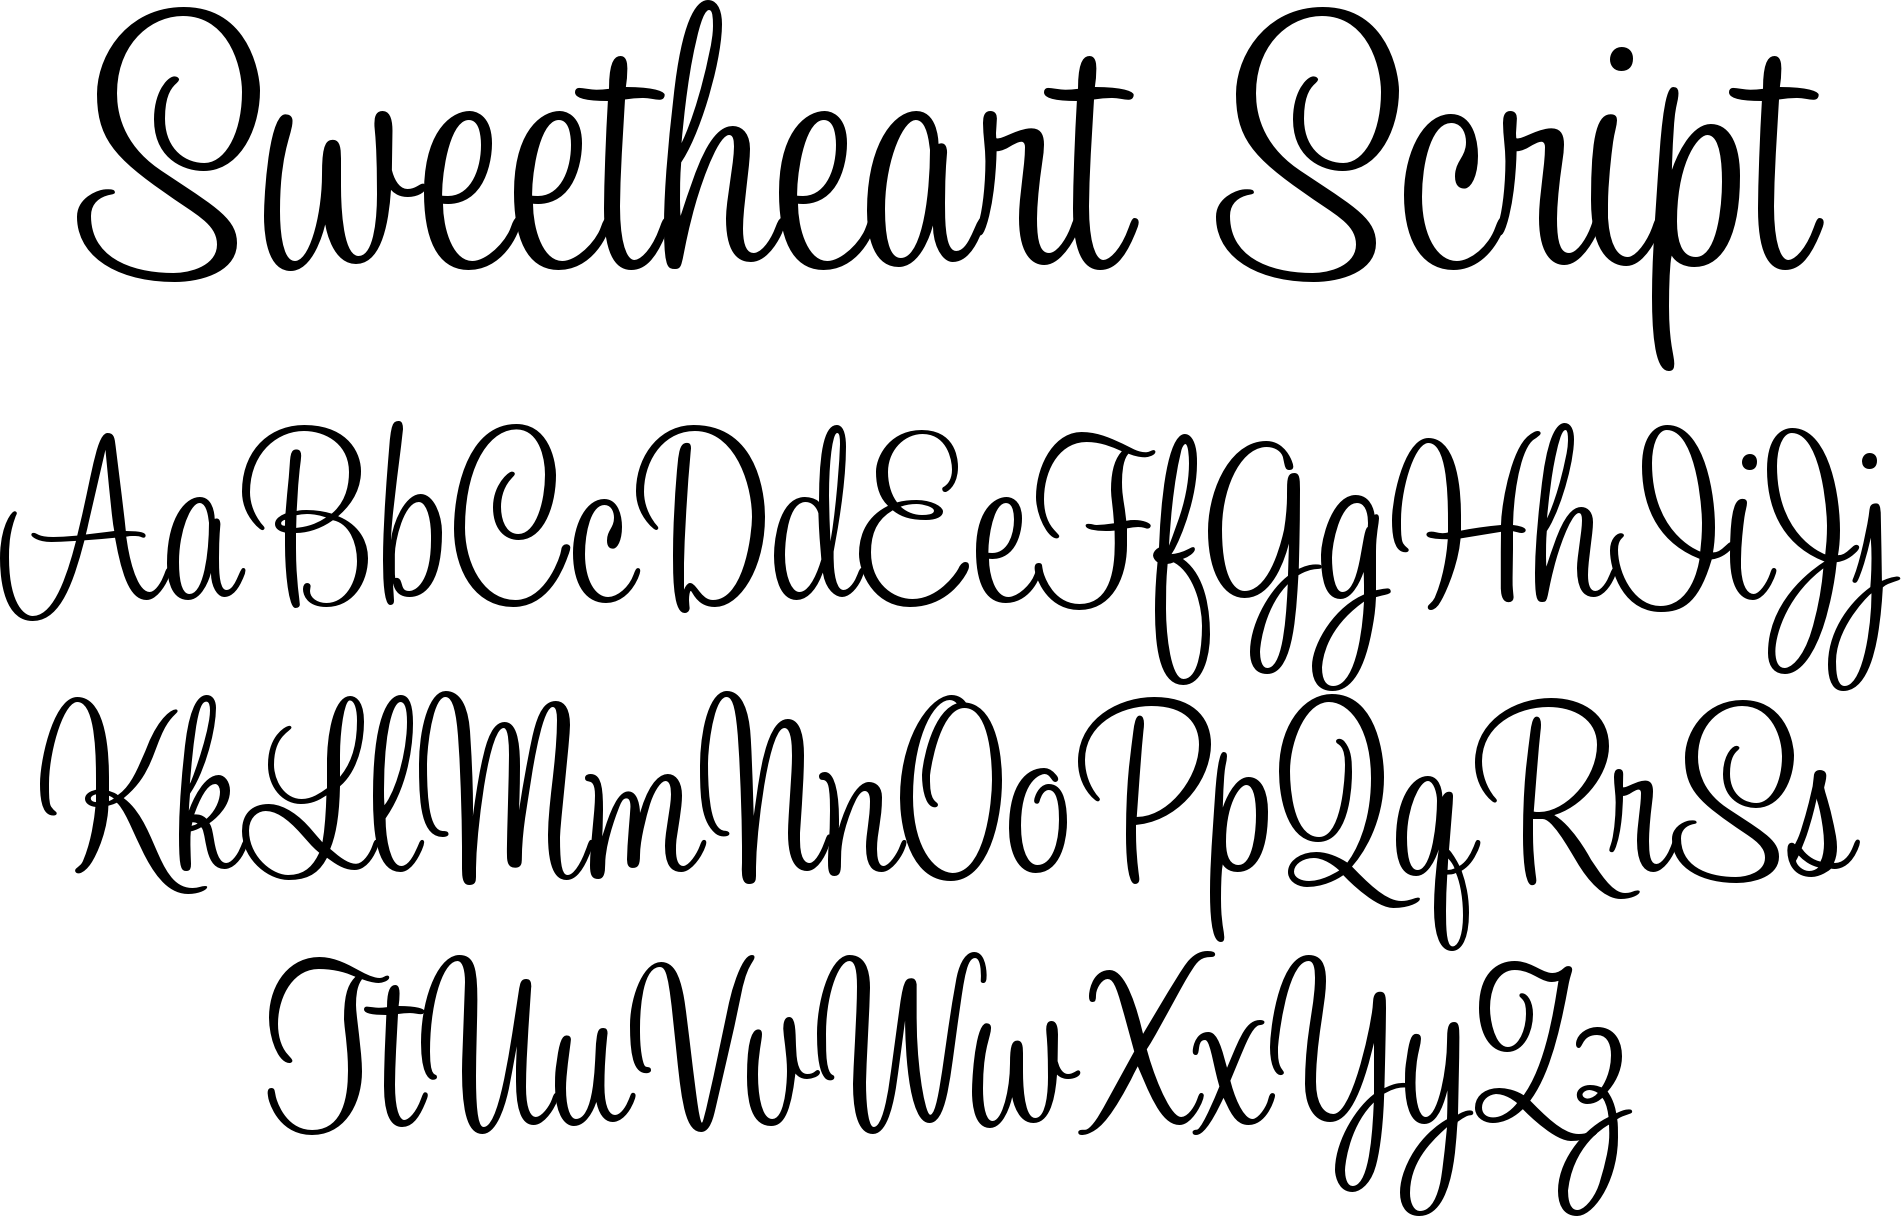 Sweetheart script tattoos that i love pinterest high